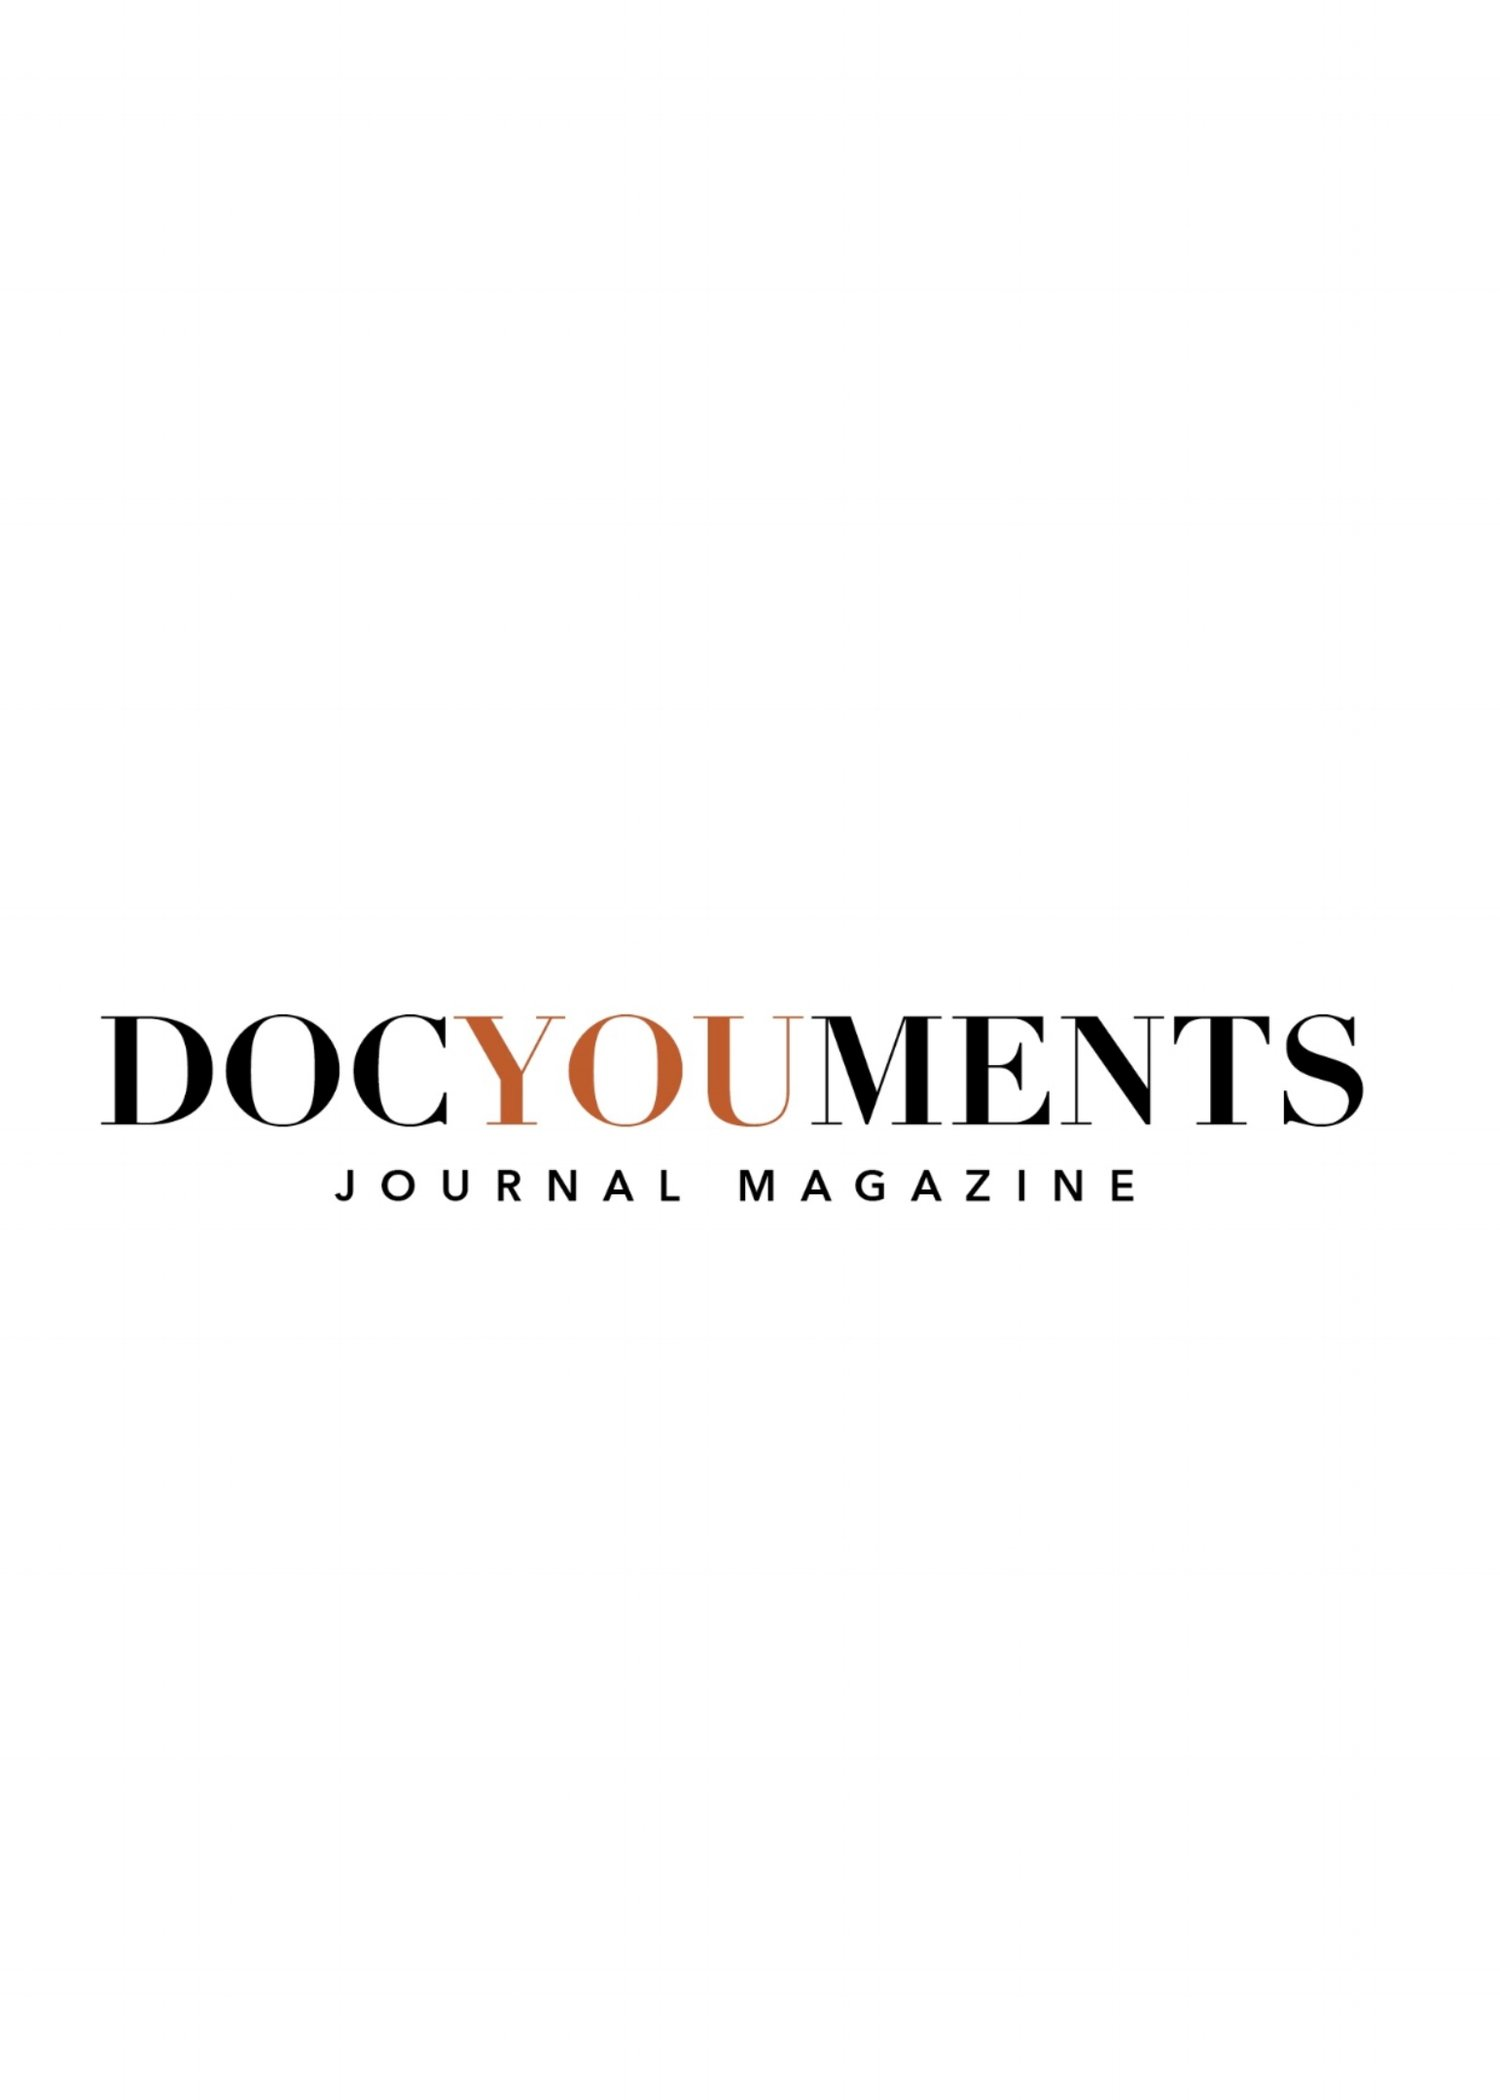 DOCYOUMENTS JOURNAL MAGAZINE